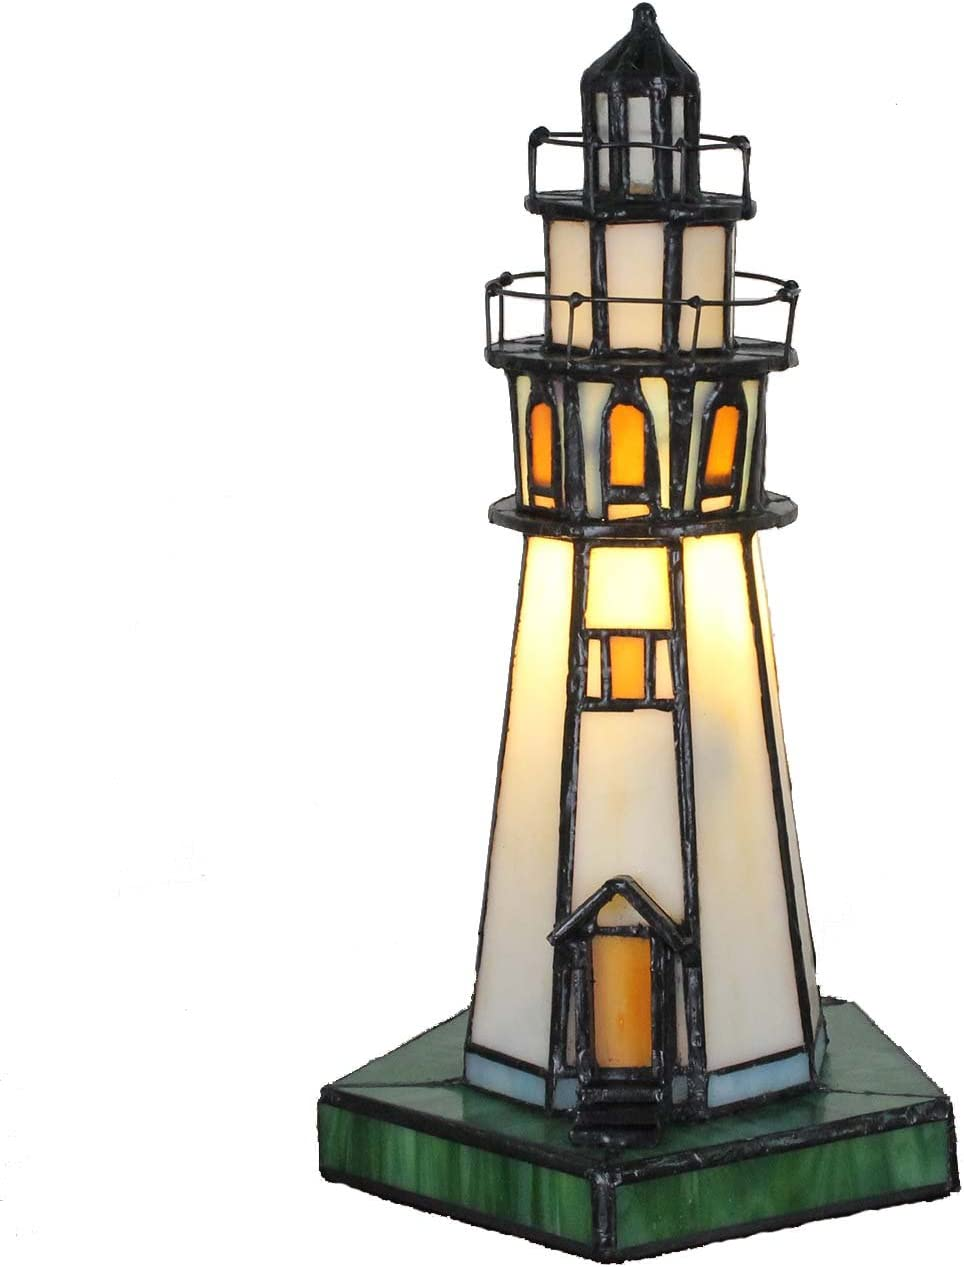 Bieye L10221 Lighthouse 10 inch Tiffany Style Stained Glass Accent Table Lamp, Night Light